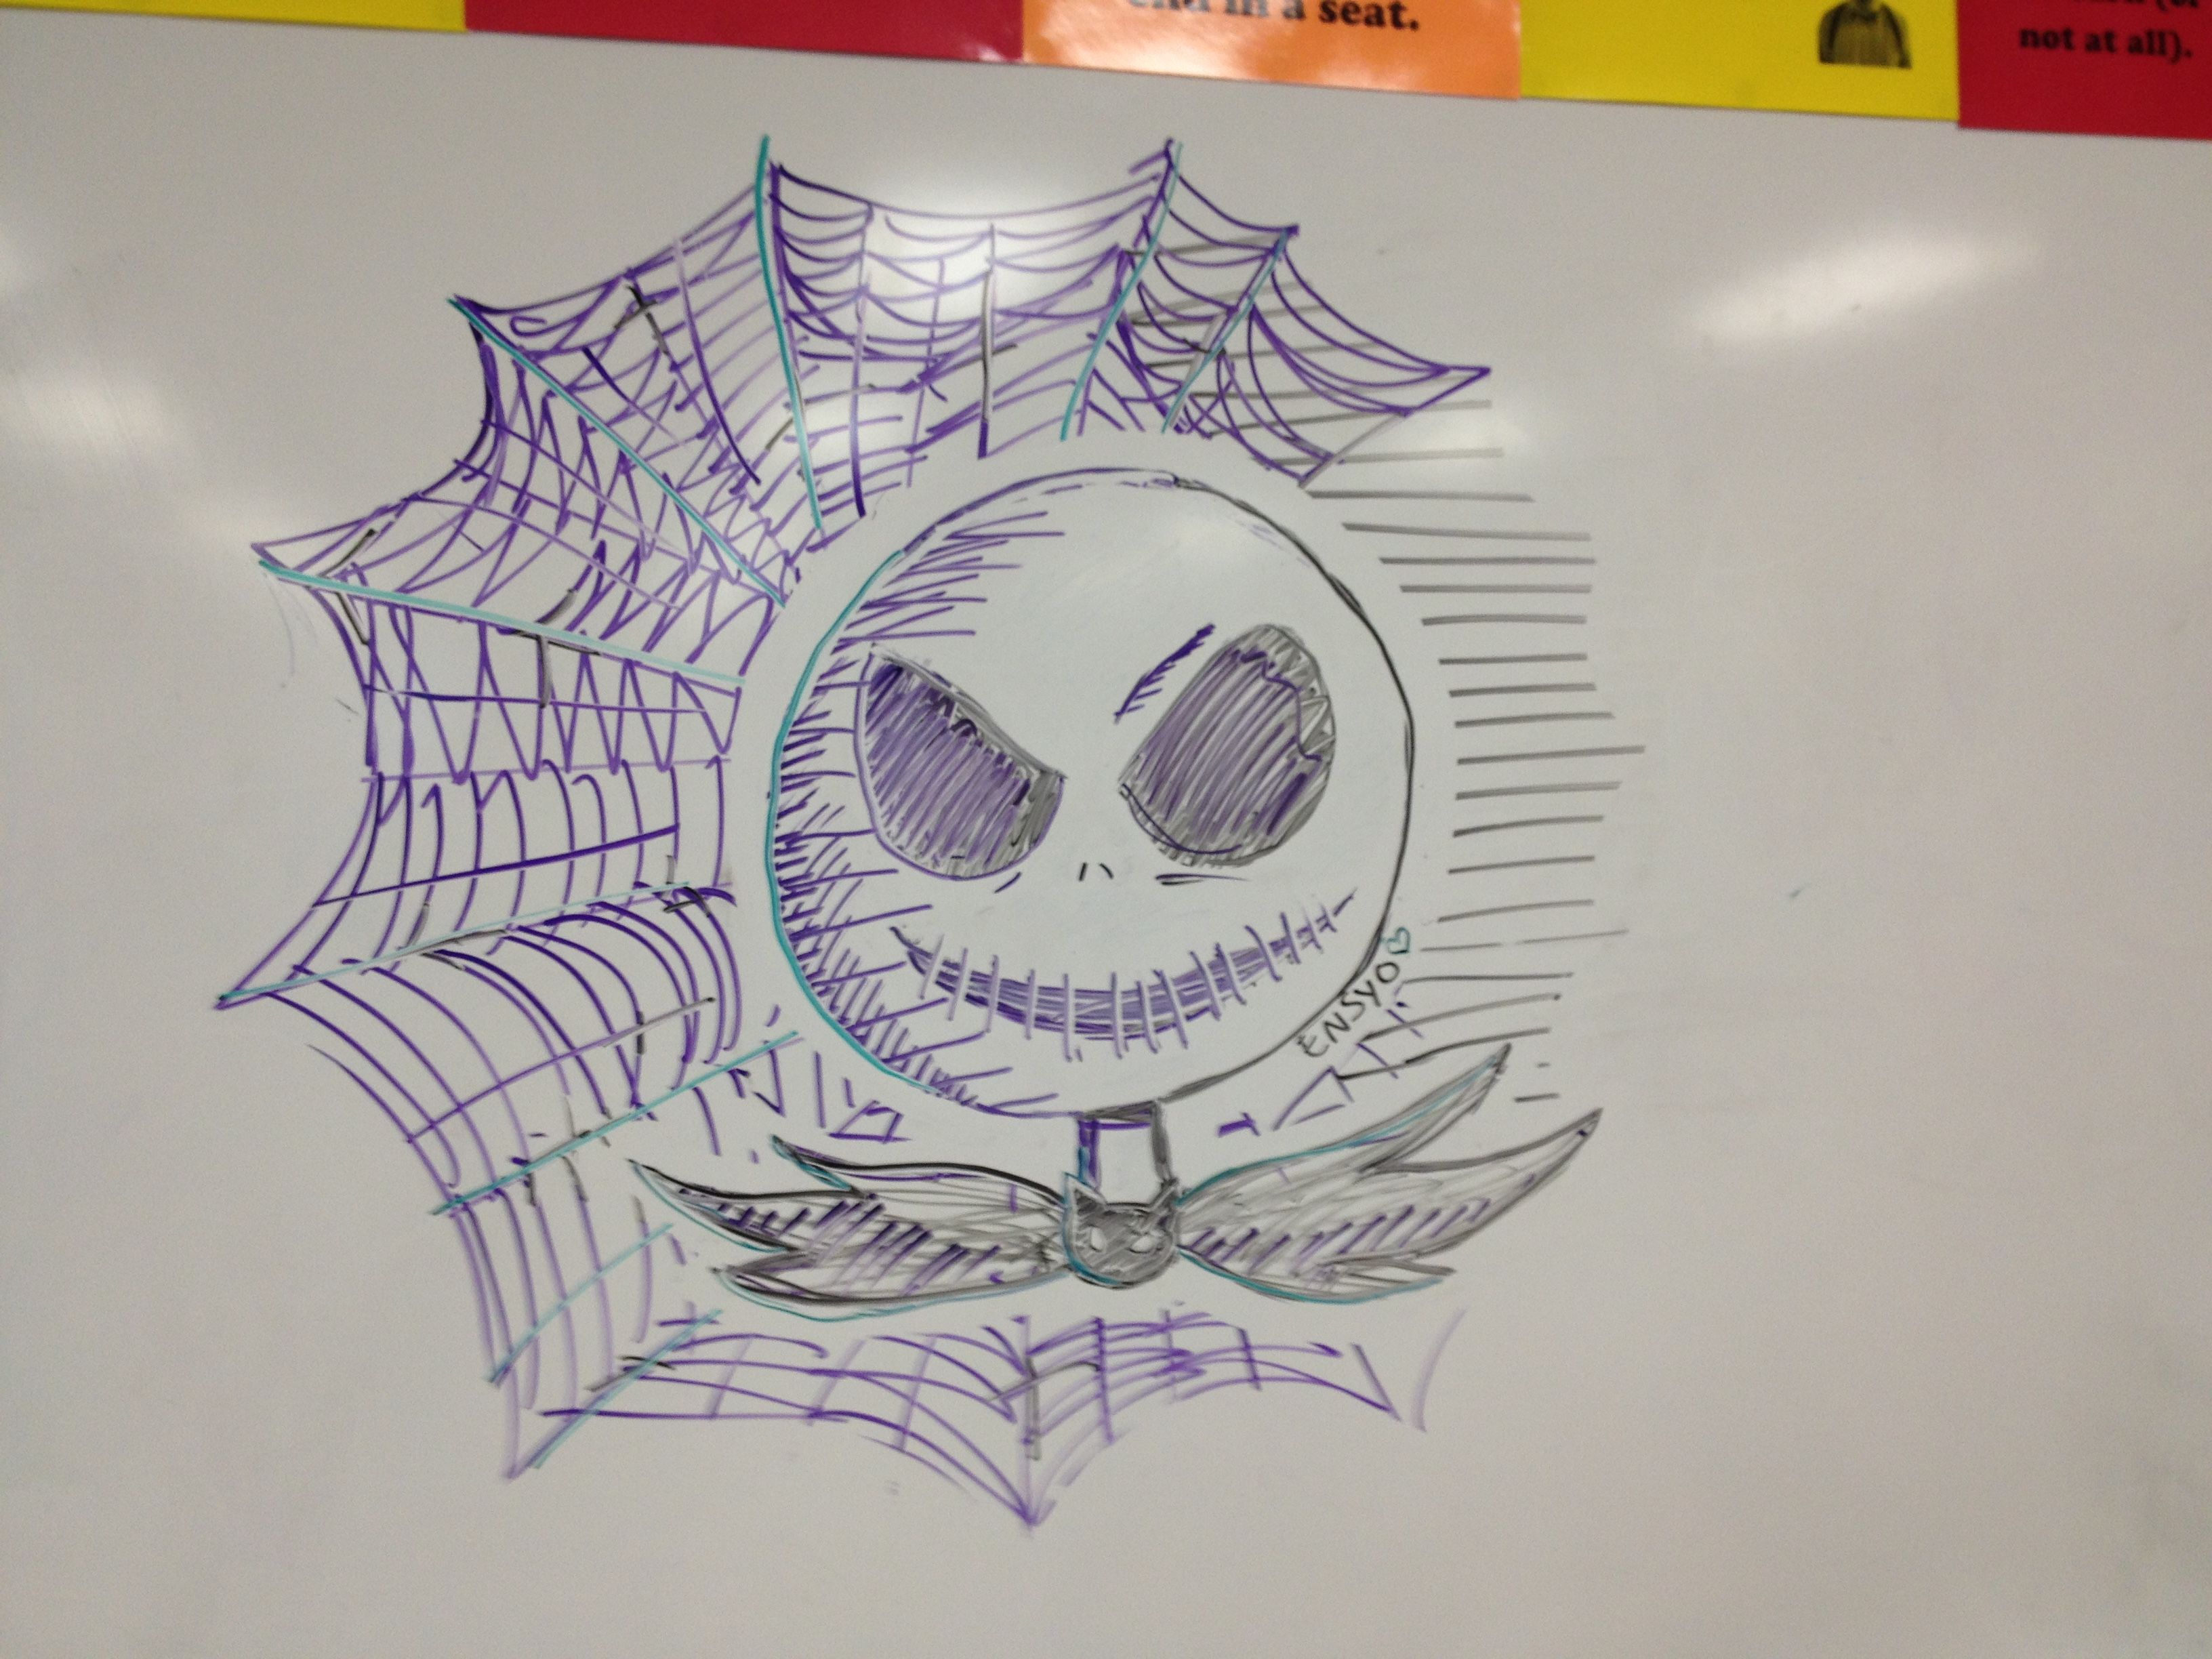 Awesome drawing in expo marker on the board in my class! All